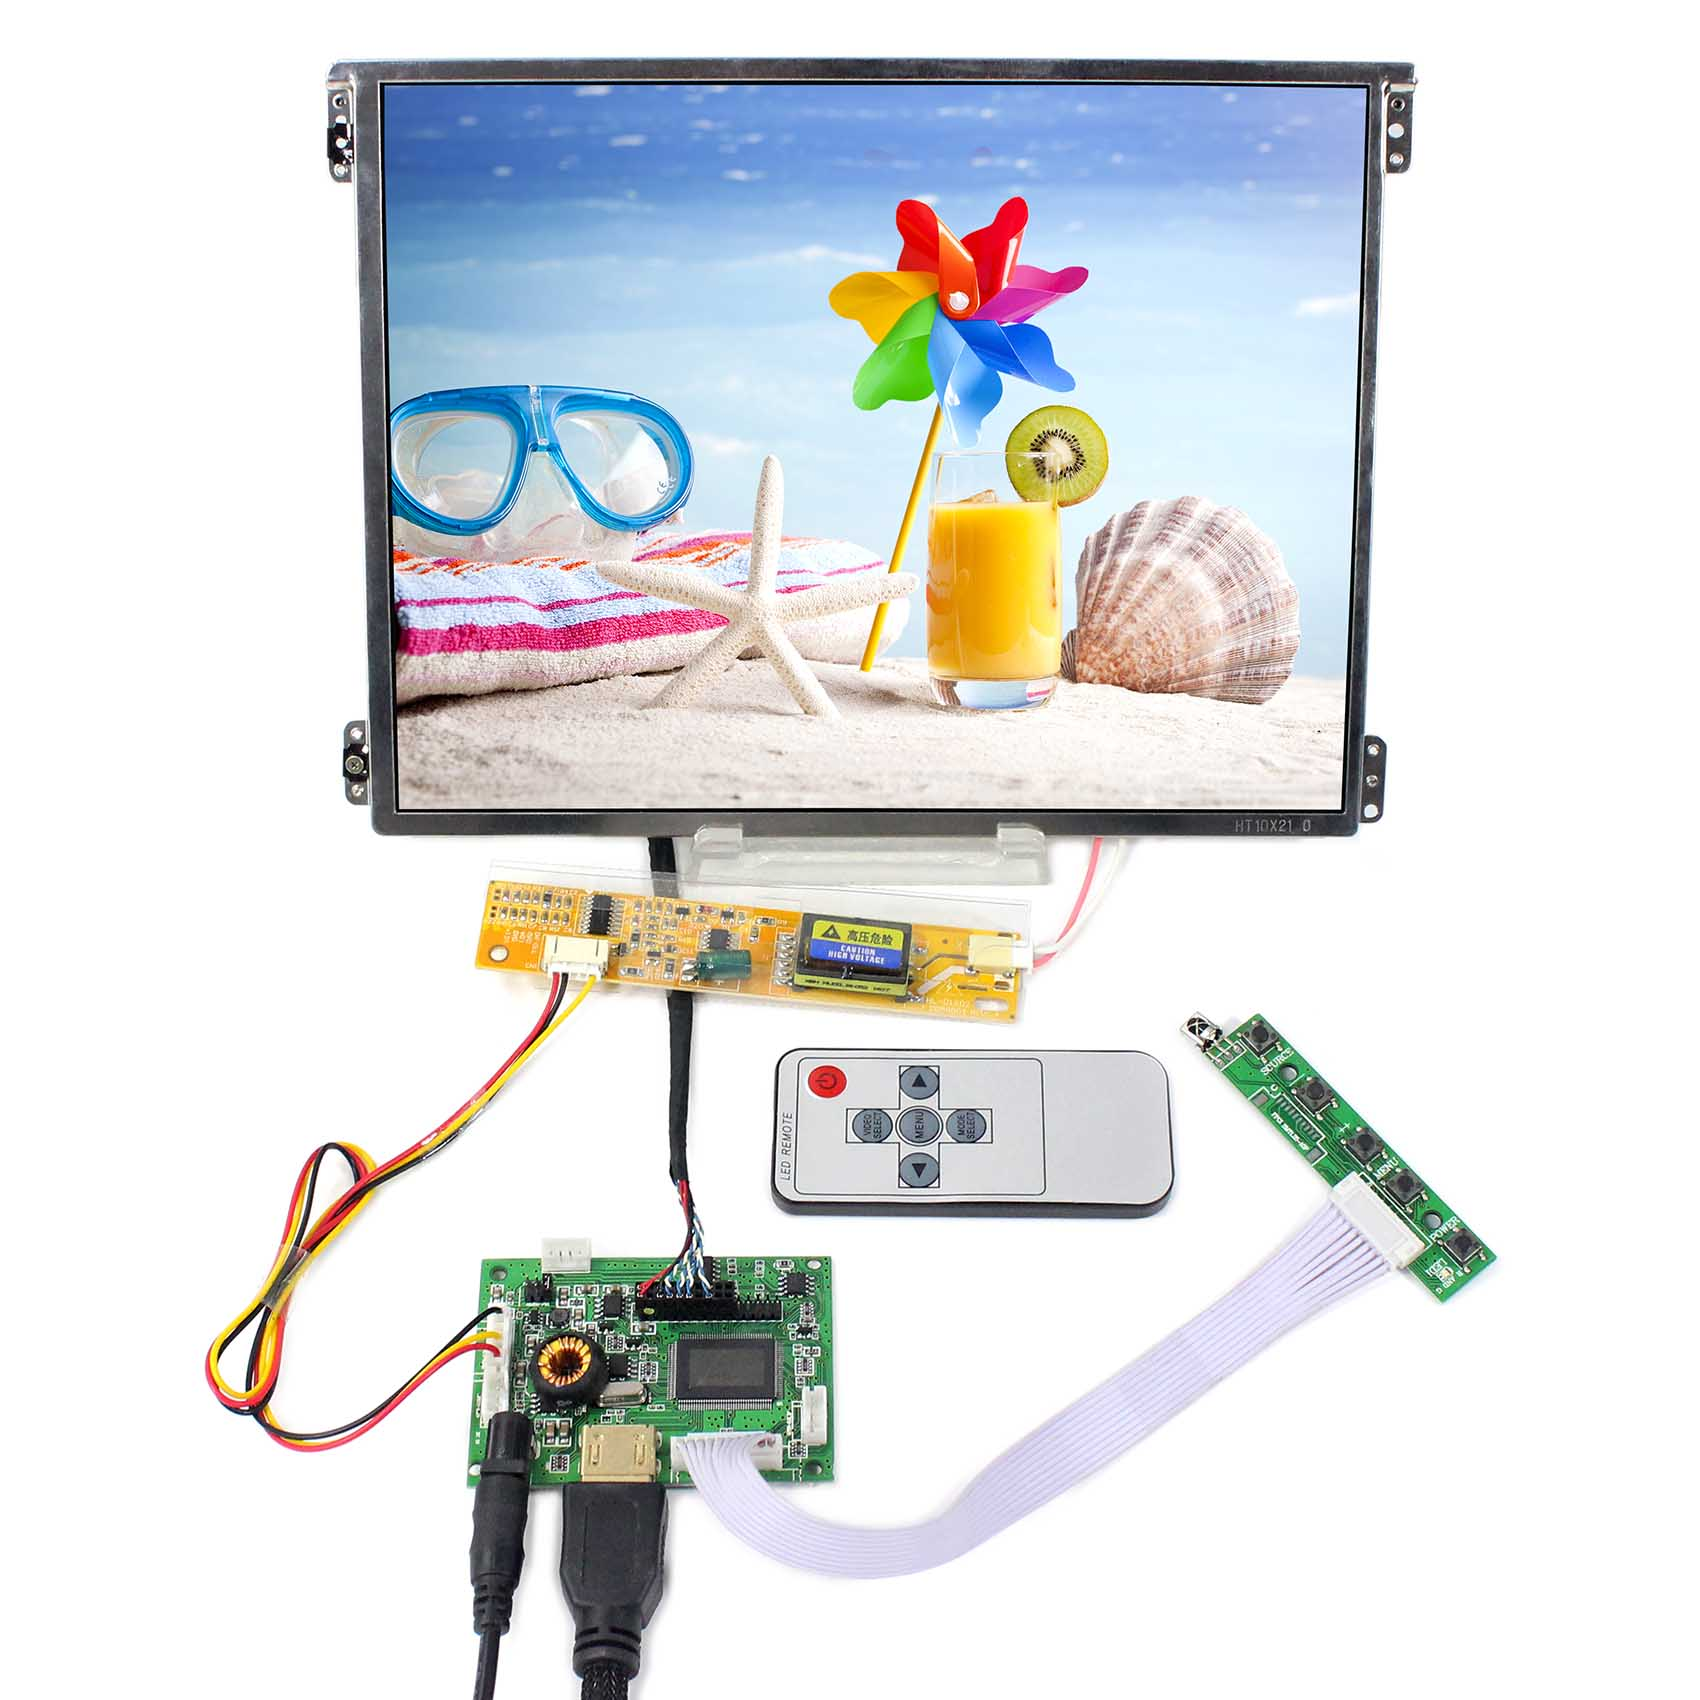 HDMI LCD Board Work for LVDS Interface LCD Screen HT10X21-311 10.4inch IPS LCD Screen  HDMI LCD Board Work for LVDS Interface LCD Screen HT10X21-311 10.4inch IPS LCD Screen